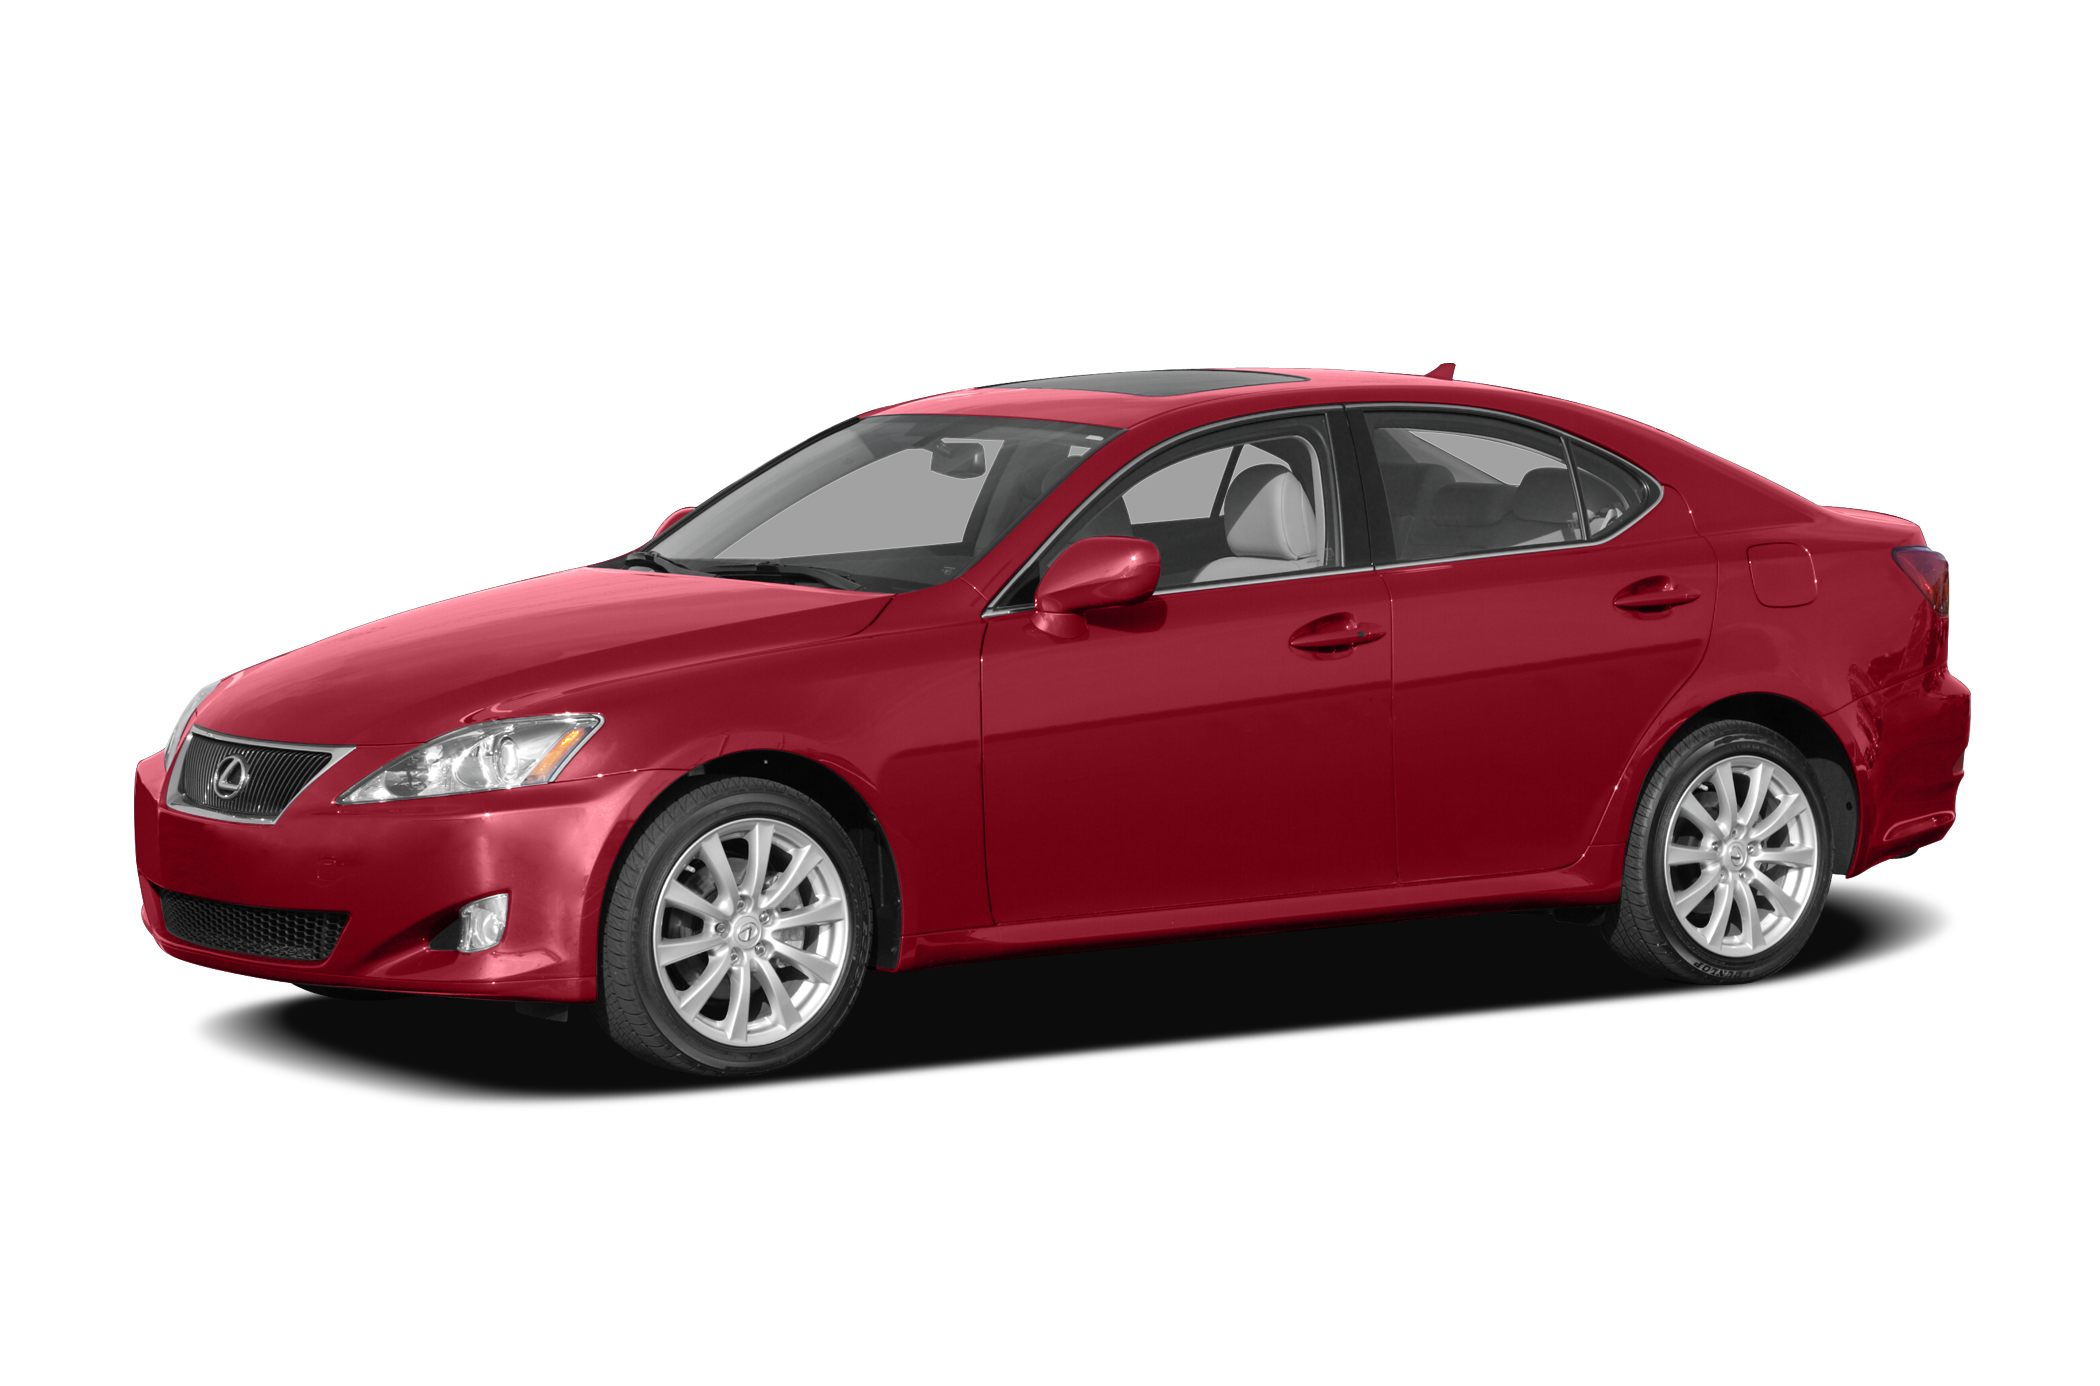 2006 Lexus IS 250 Sedan for sale in Bronx for $9,495 with 124,655 miles